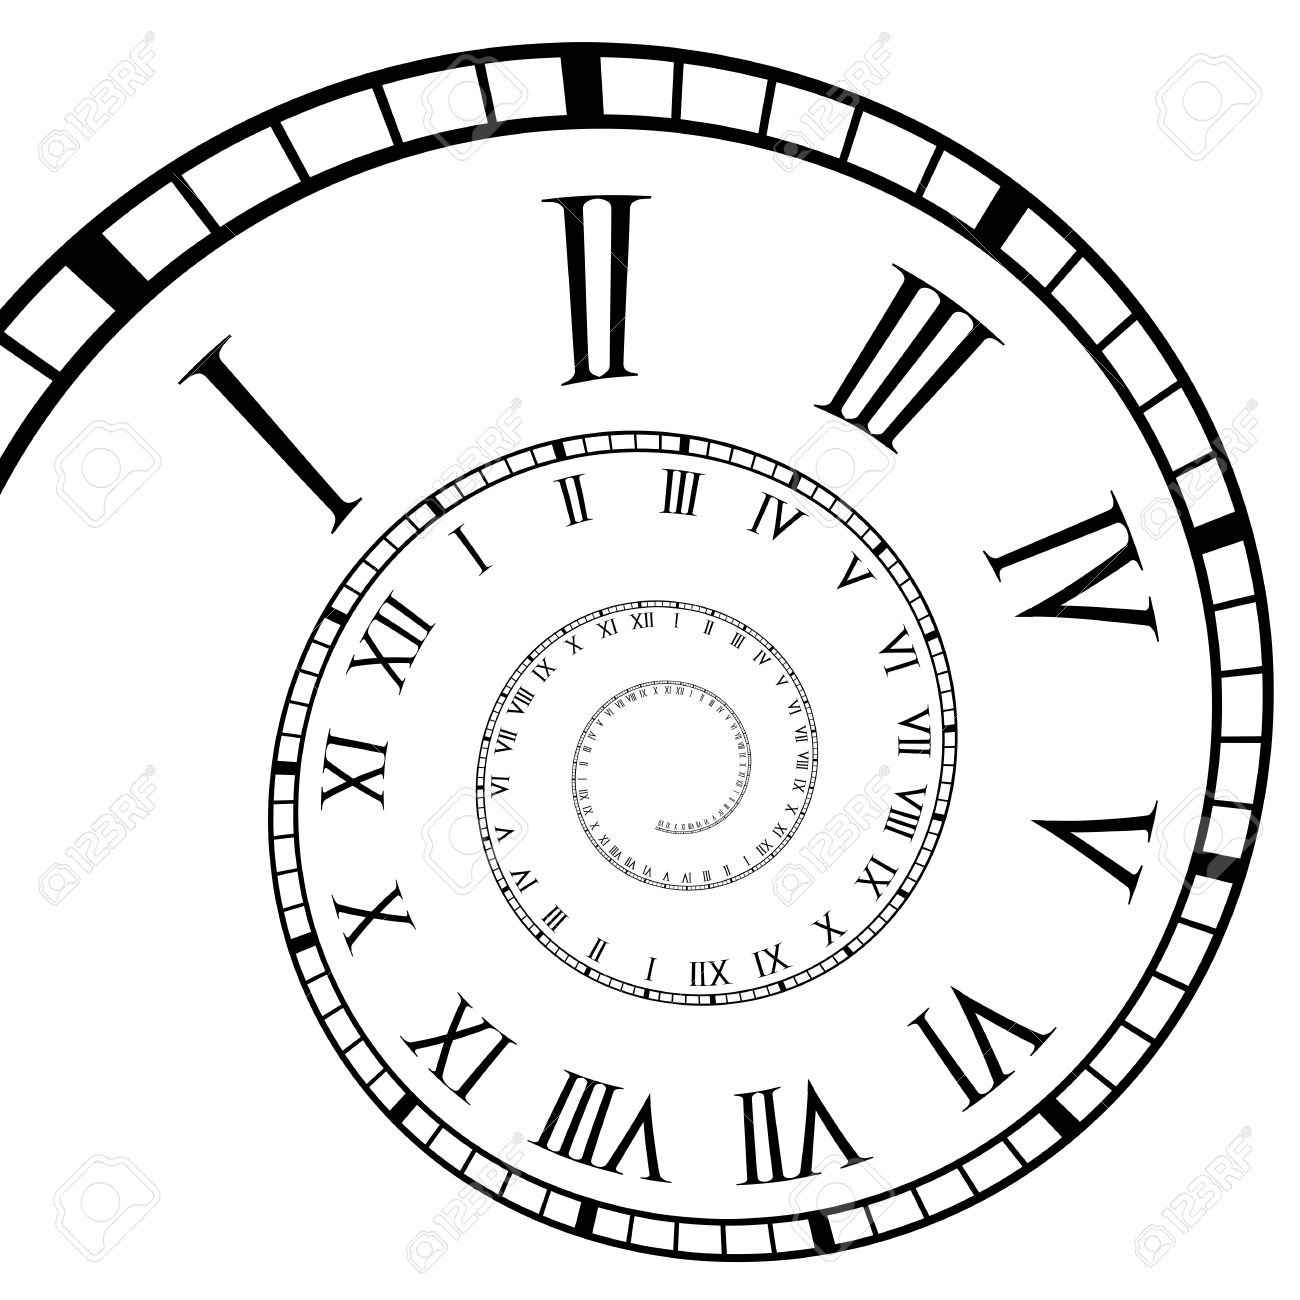 Roman numeral clock spiral time line Stock Vector - 20238560